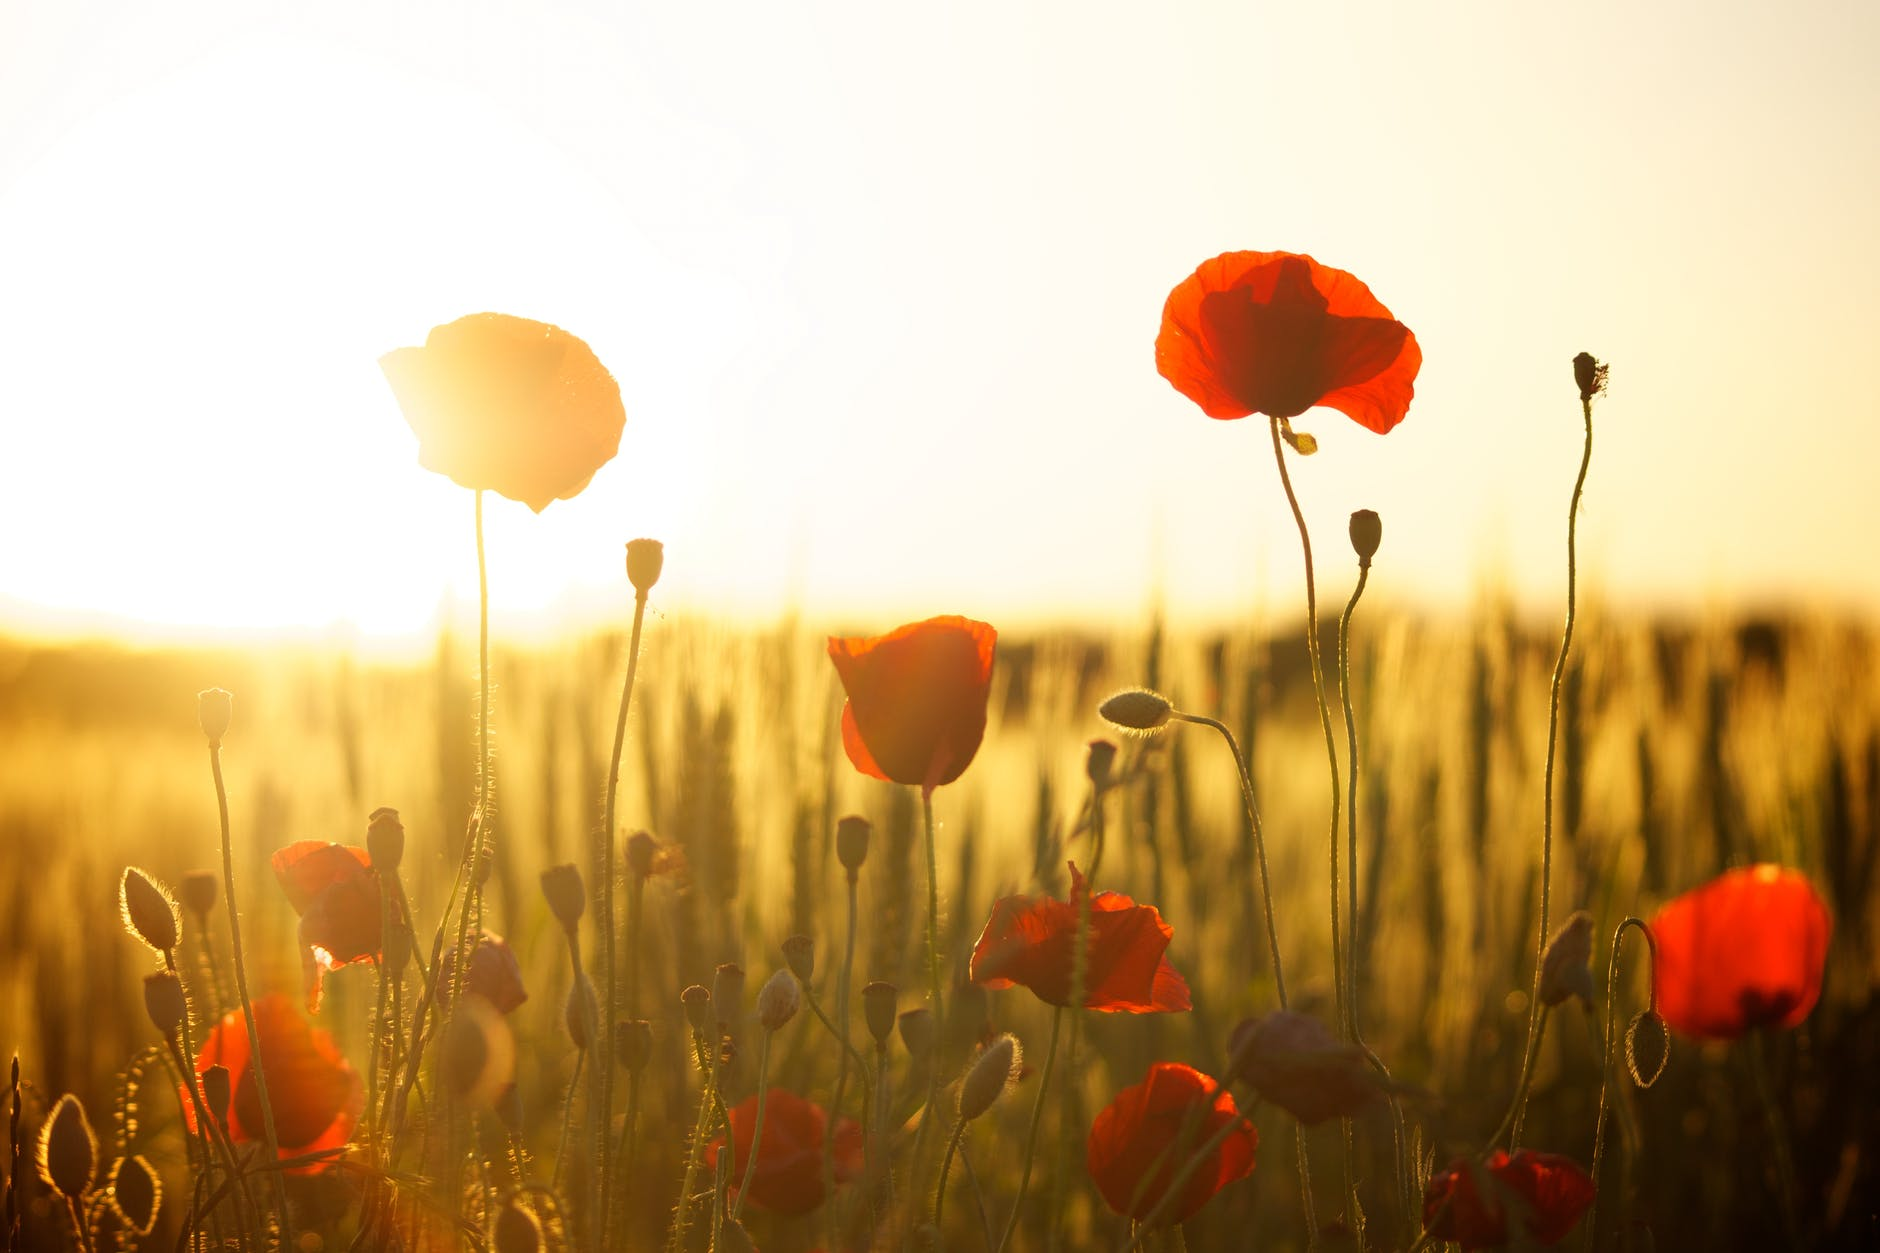 Modern picture of poppies. Photo by Pixabay on Pexels.com